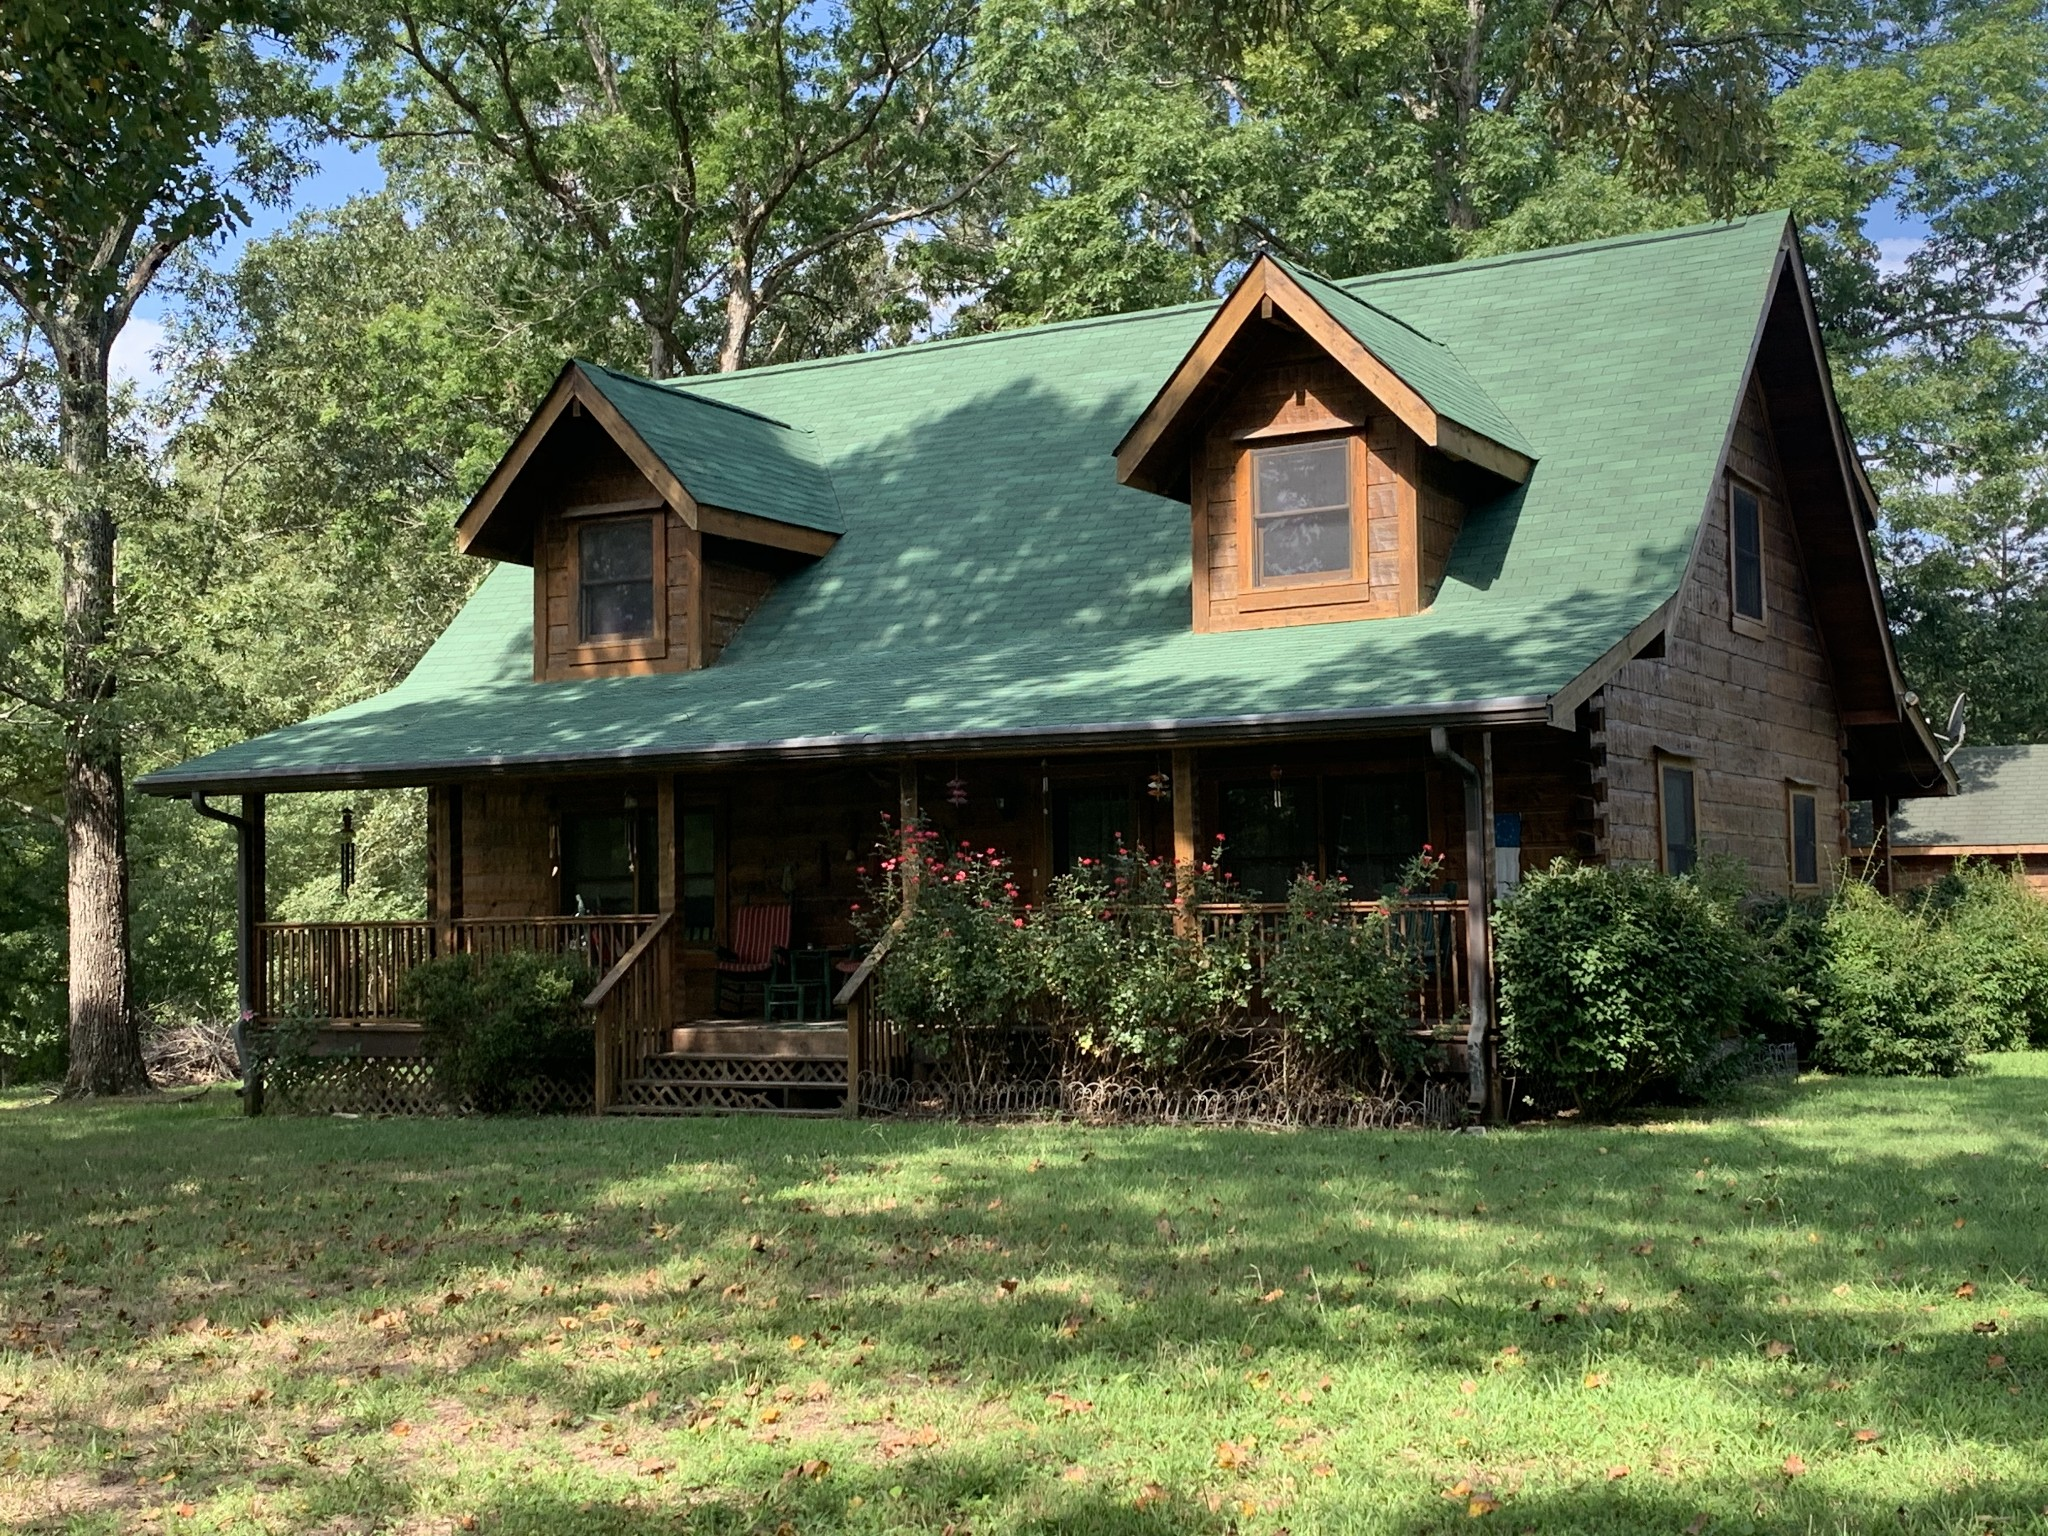 5025 Rockport McIllwain Rd Property Photo - Holladay, TN real estate listing